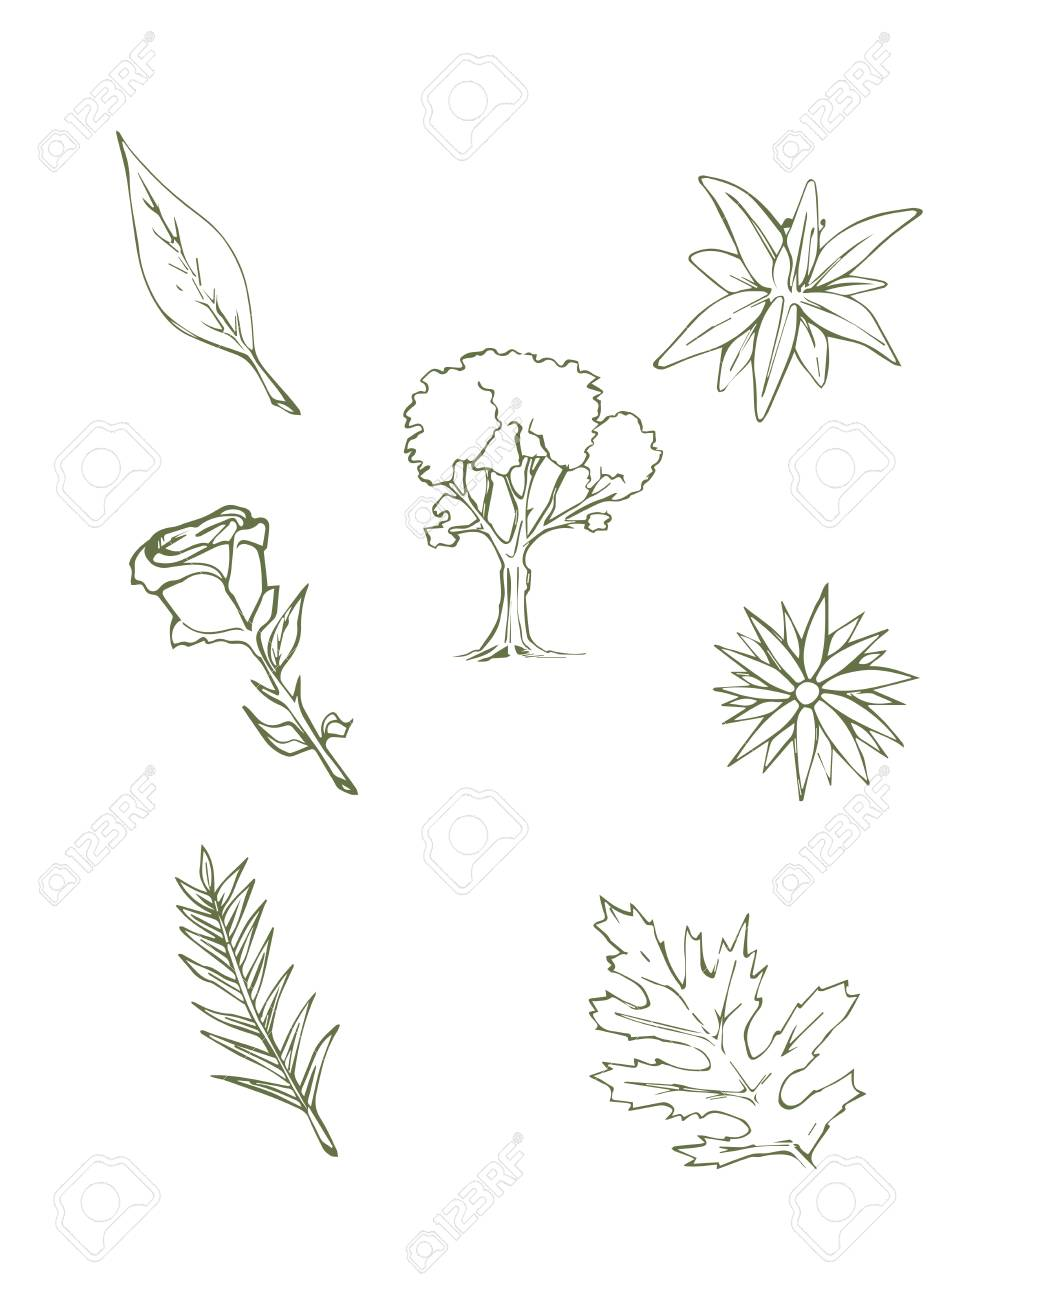 Hand drawn vector illustration or drawing of different plants stock vector 35613551